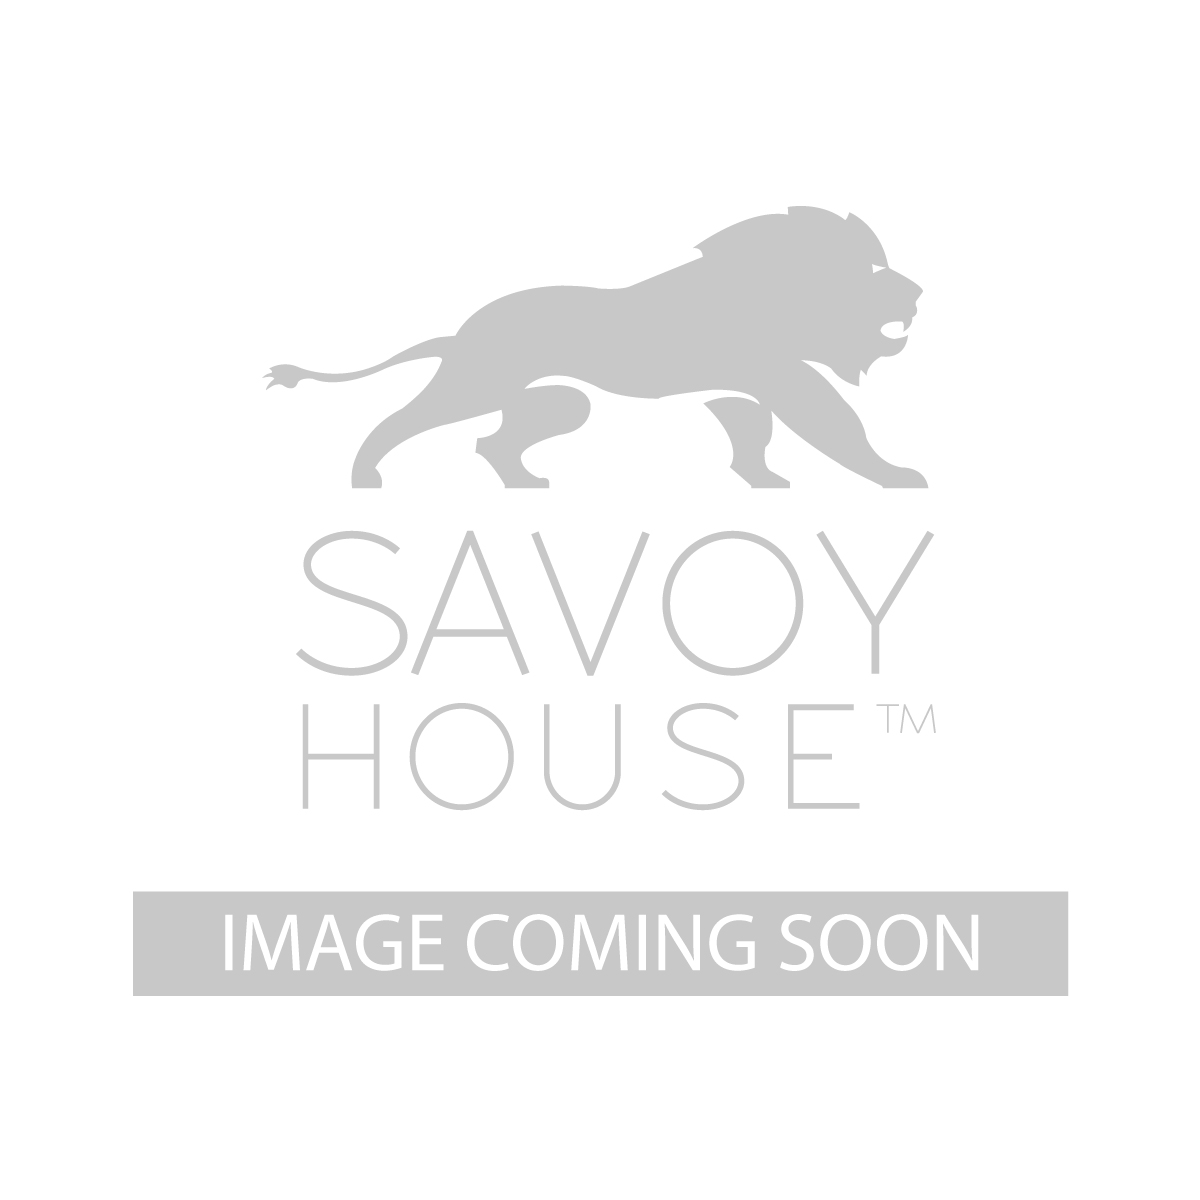 13264 13 Flush Mount By Savoy House